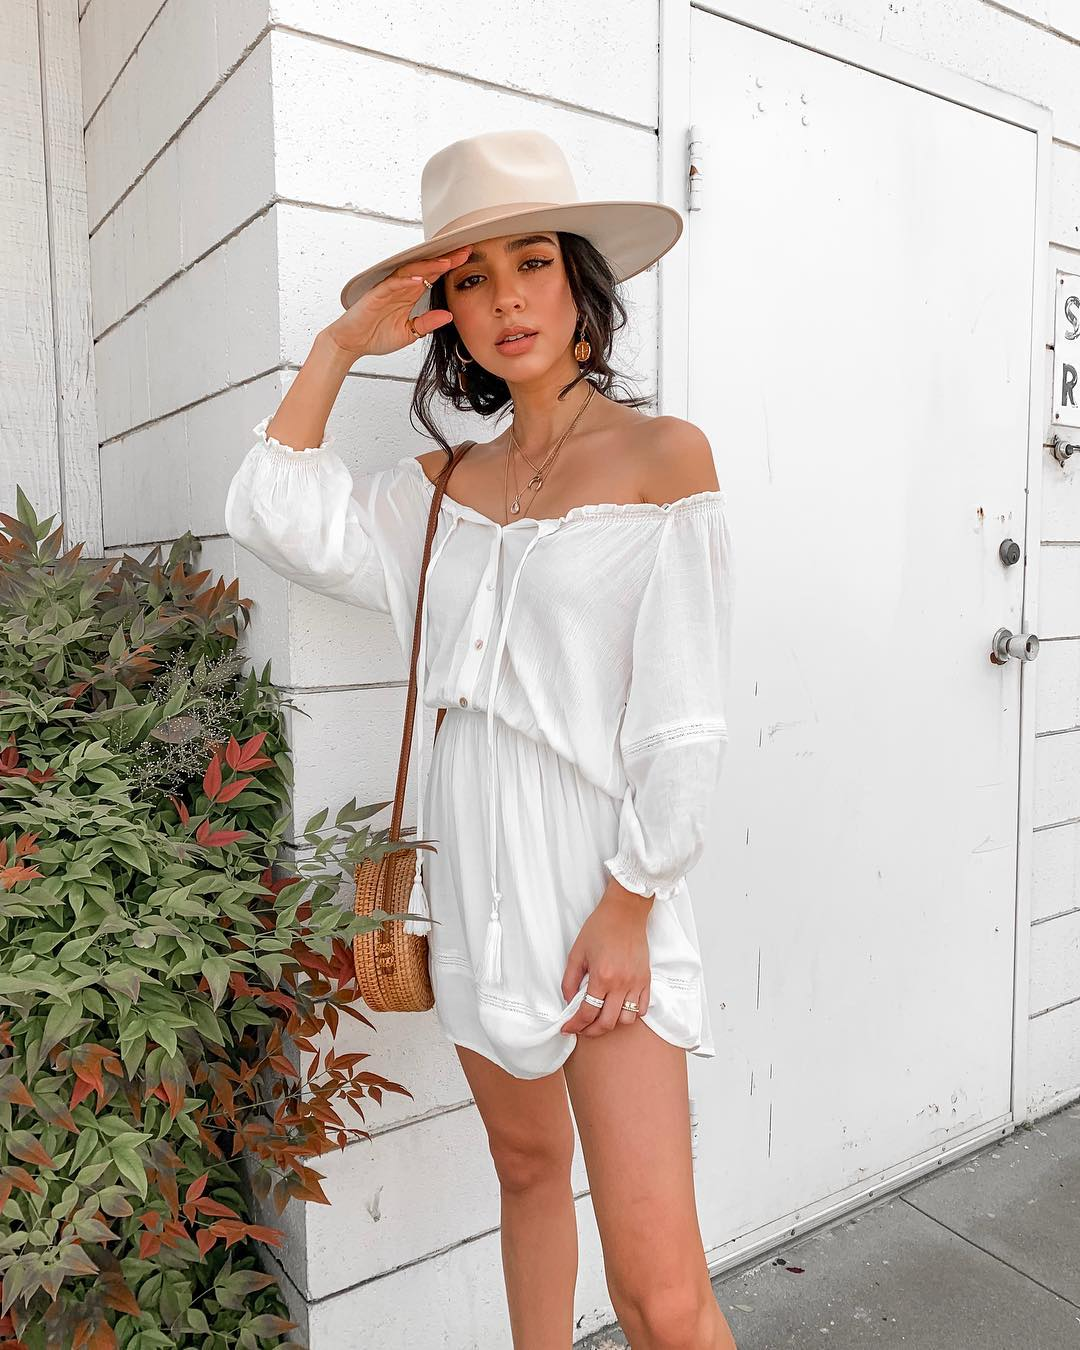 f9c924bcf8cb1 White Dress Outfits: Ideas for How to Wear a White Dress Like a ...